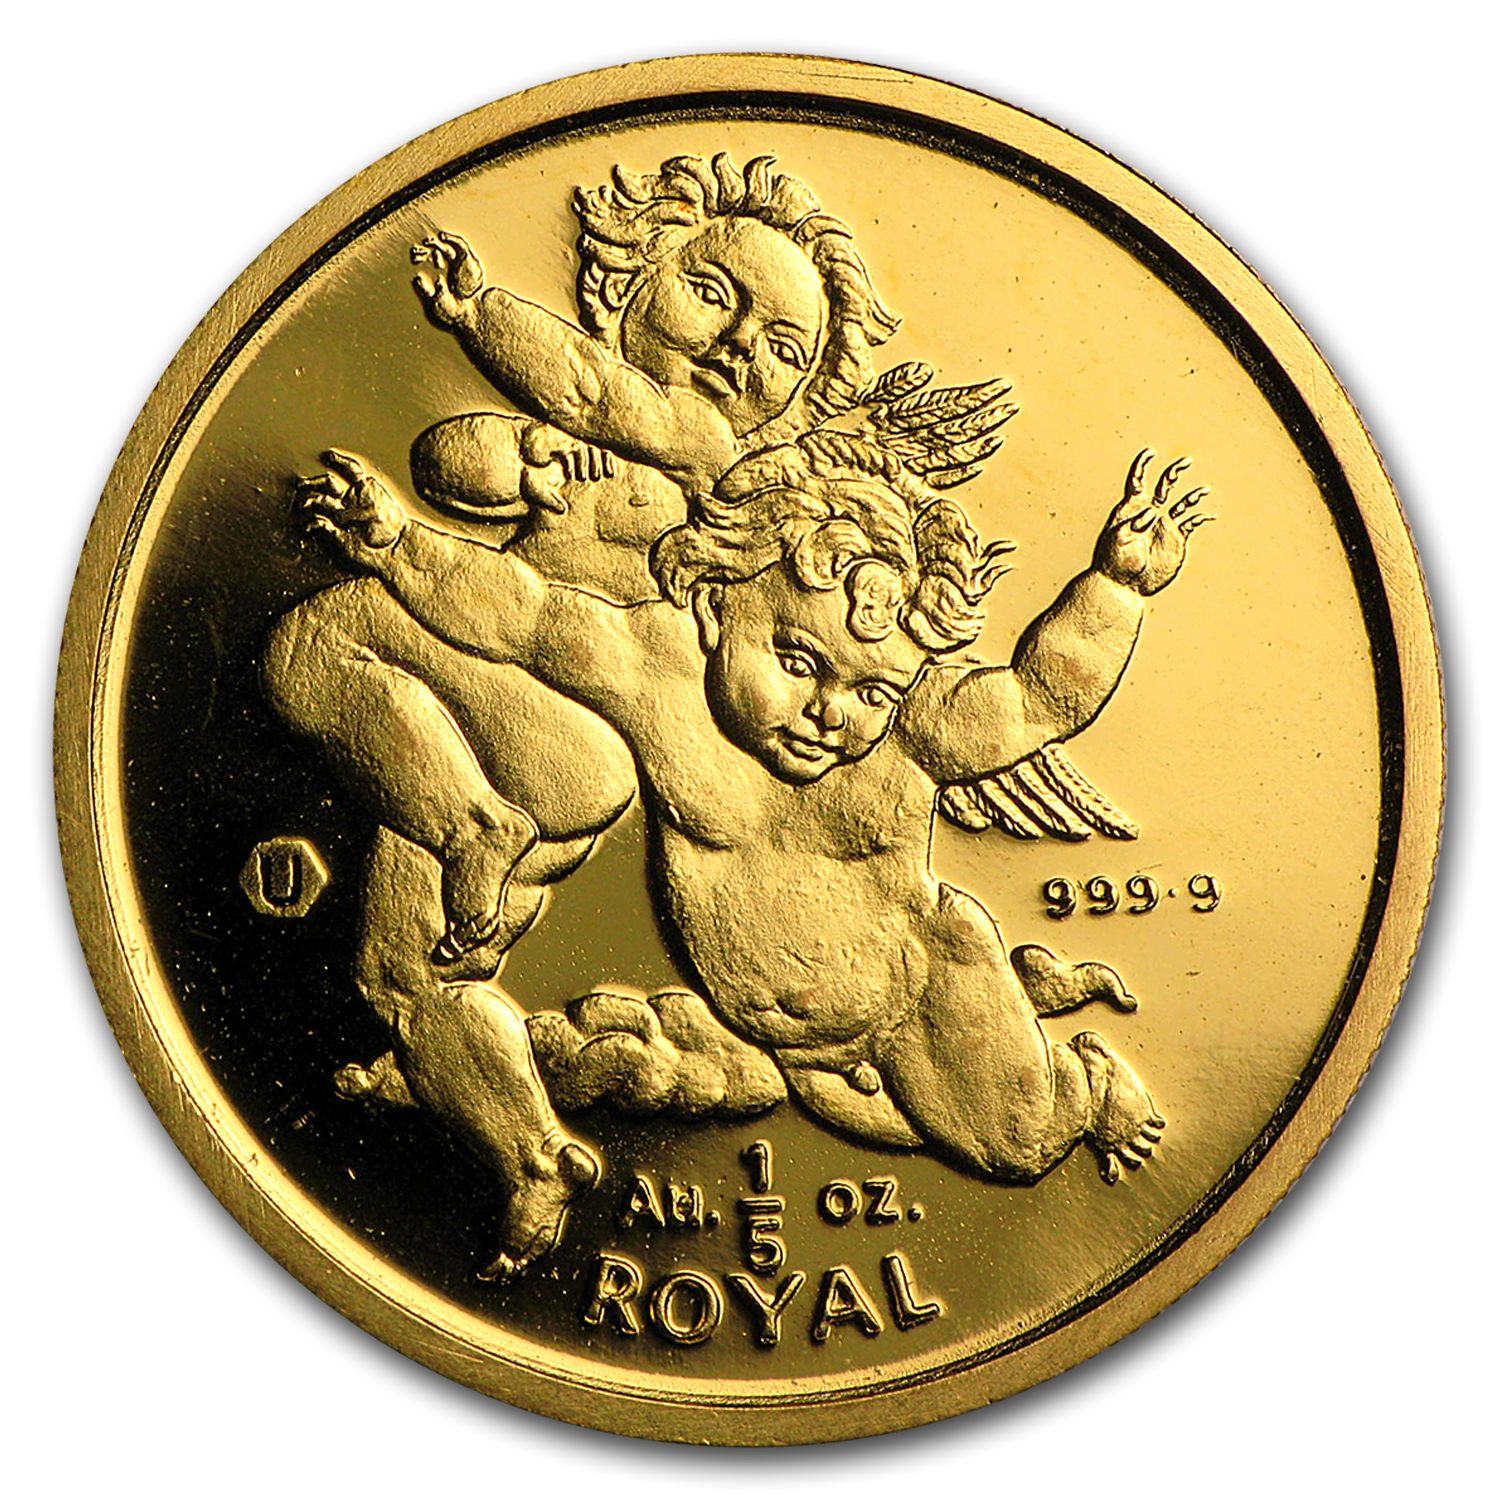 Gibraltar 1/5 oz Gold Royal BU/Proof (Random year)